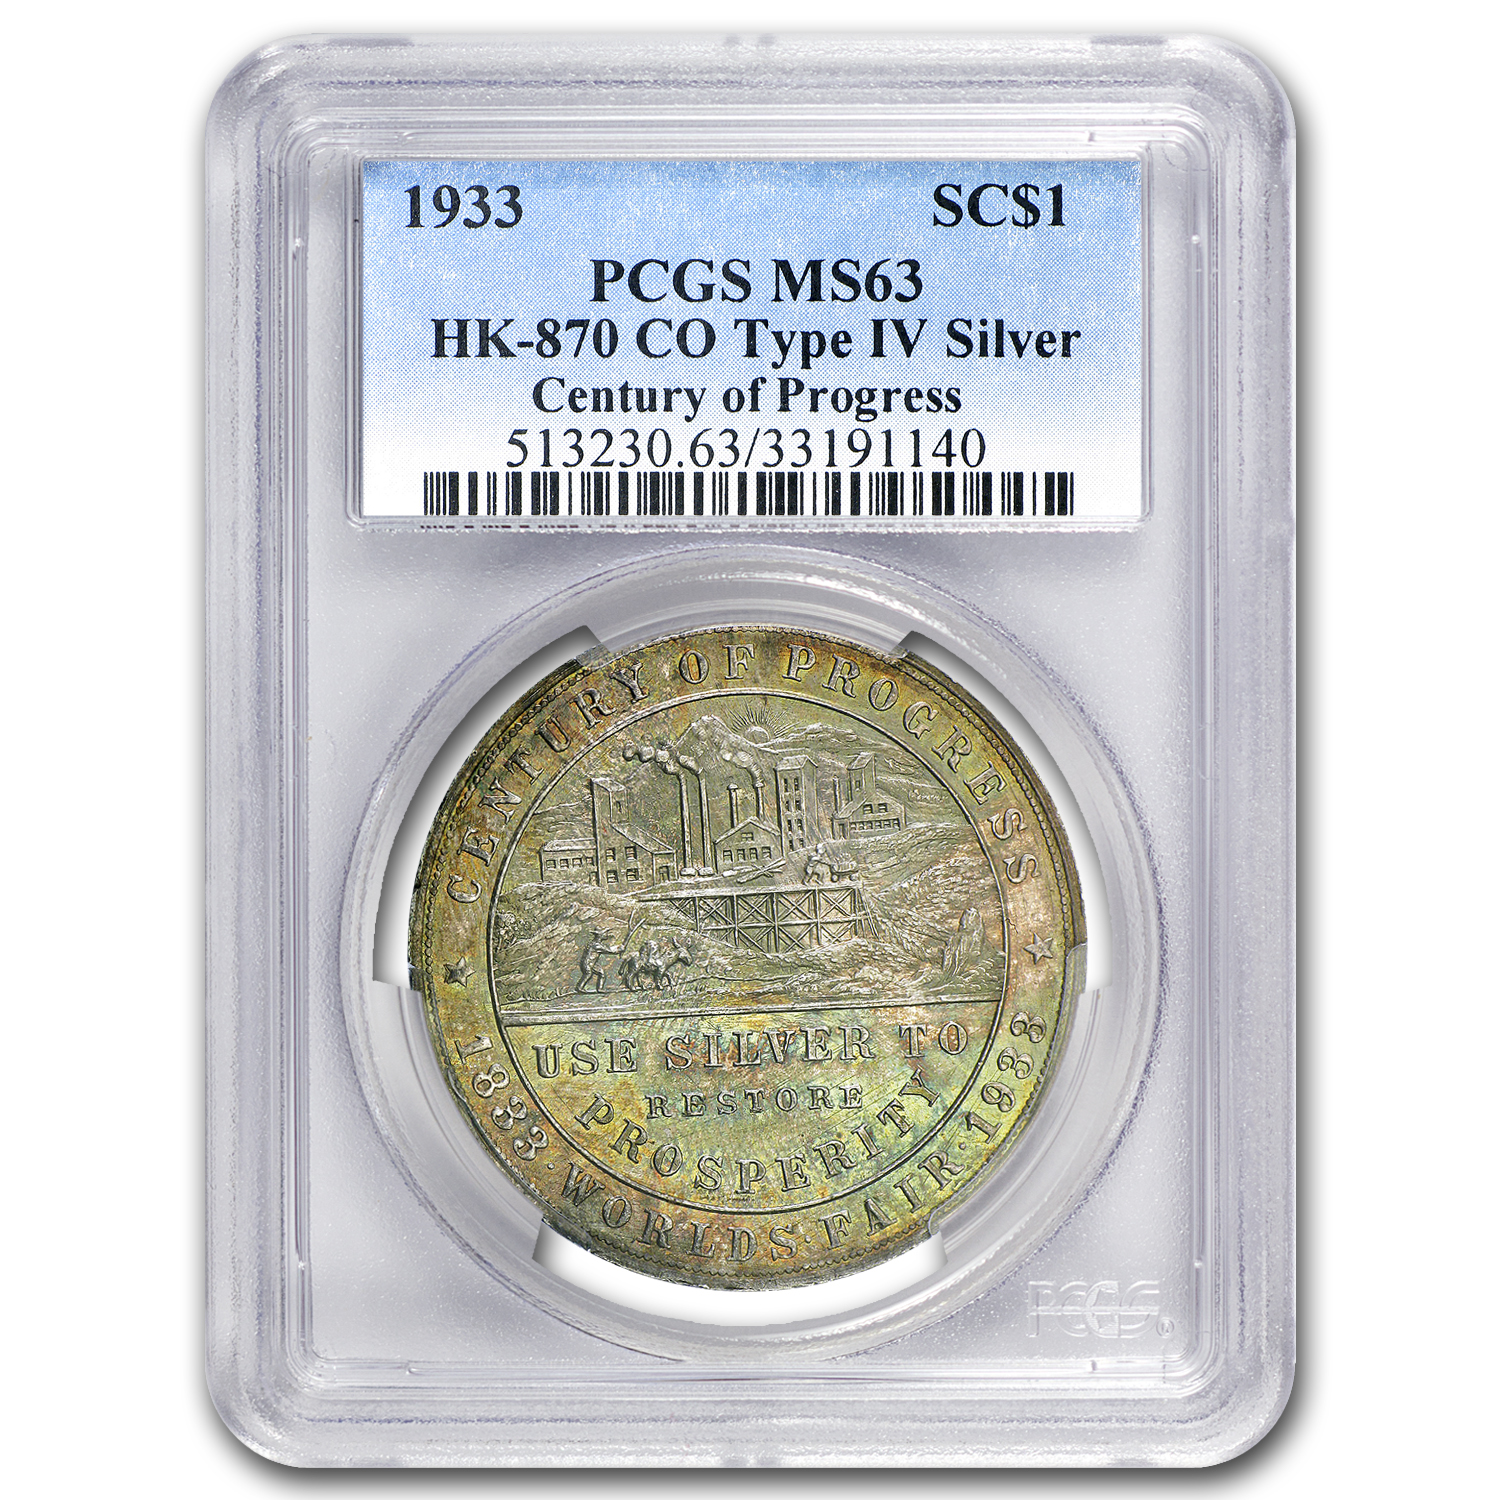 1933 Colorado Century of Progress Silver Dollar HK-870 MS-63 PCGS